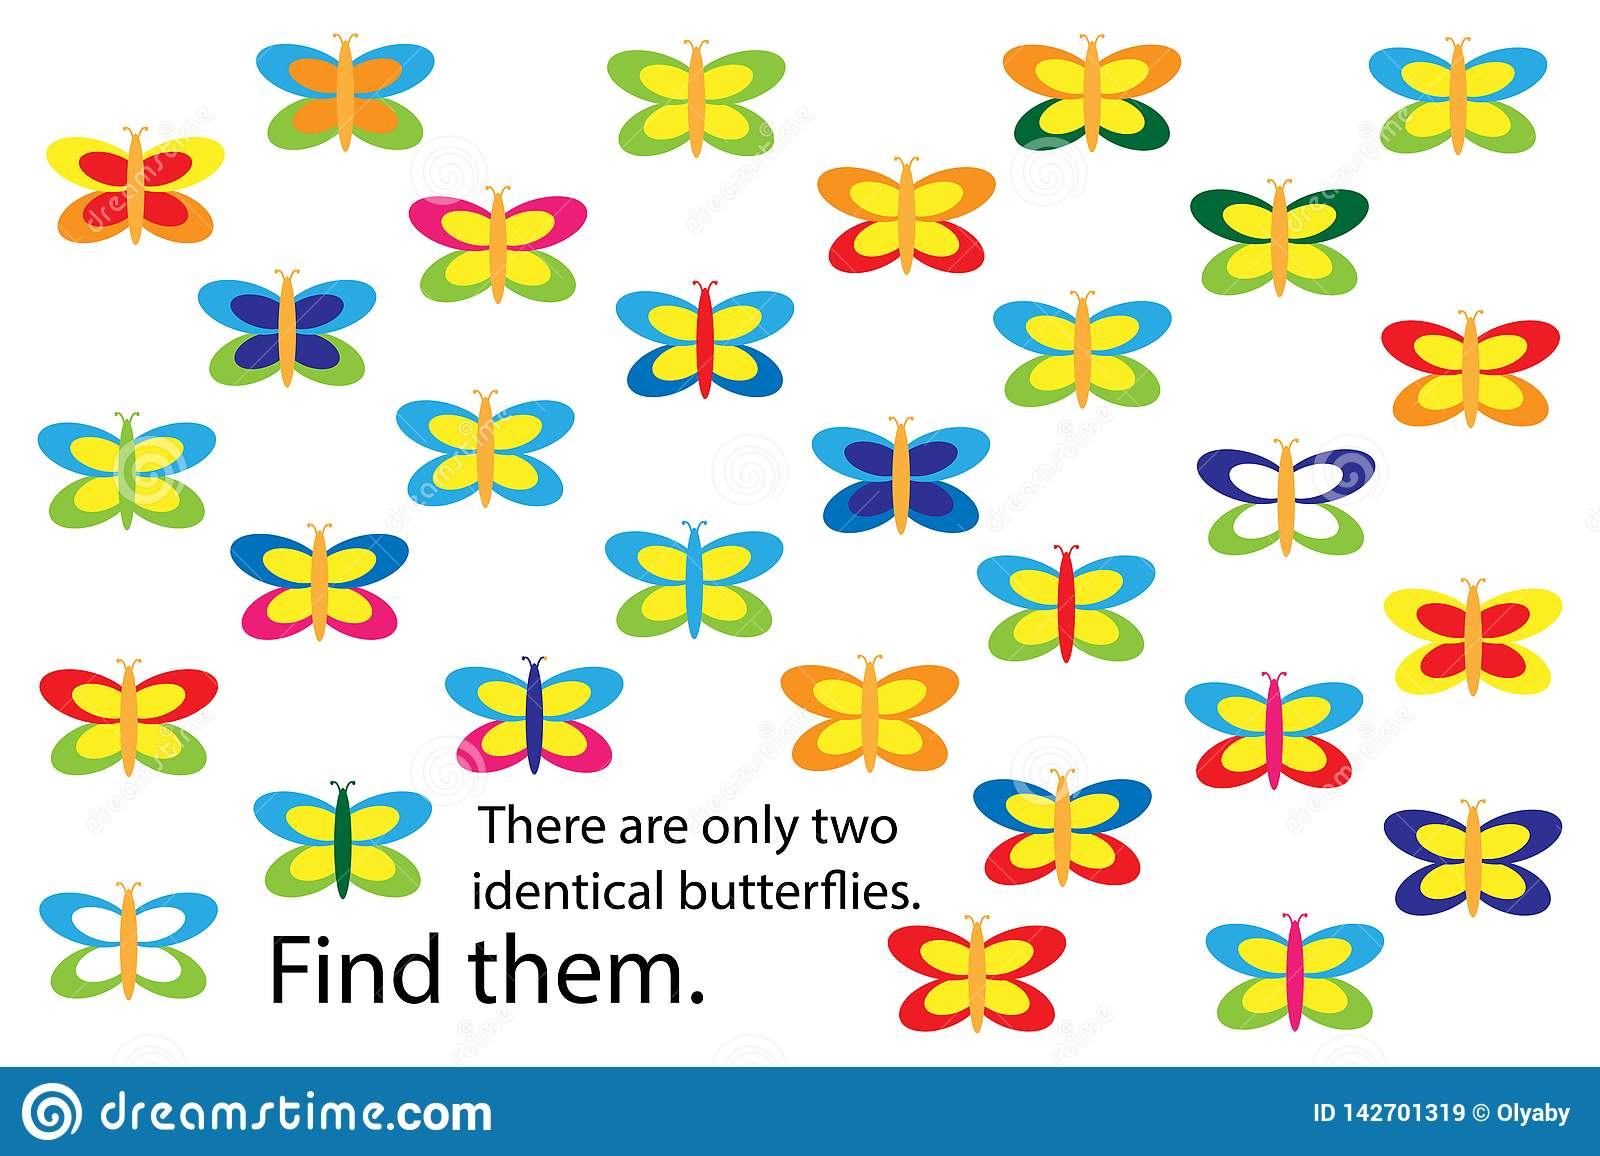 Find Two Identical Butterflies Spring Fun Education